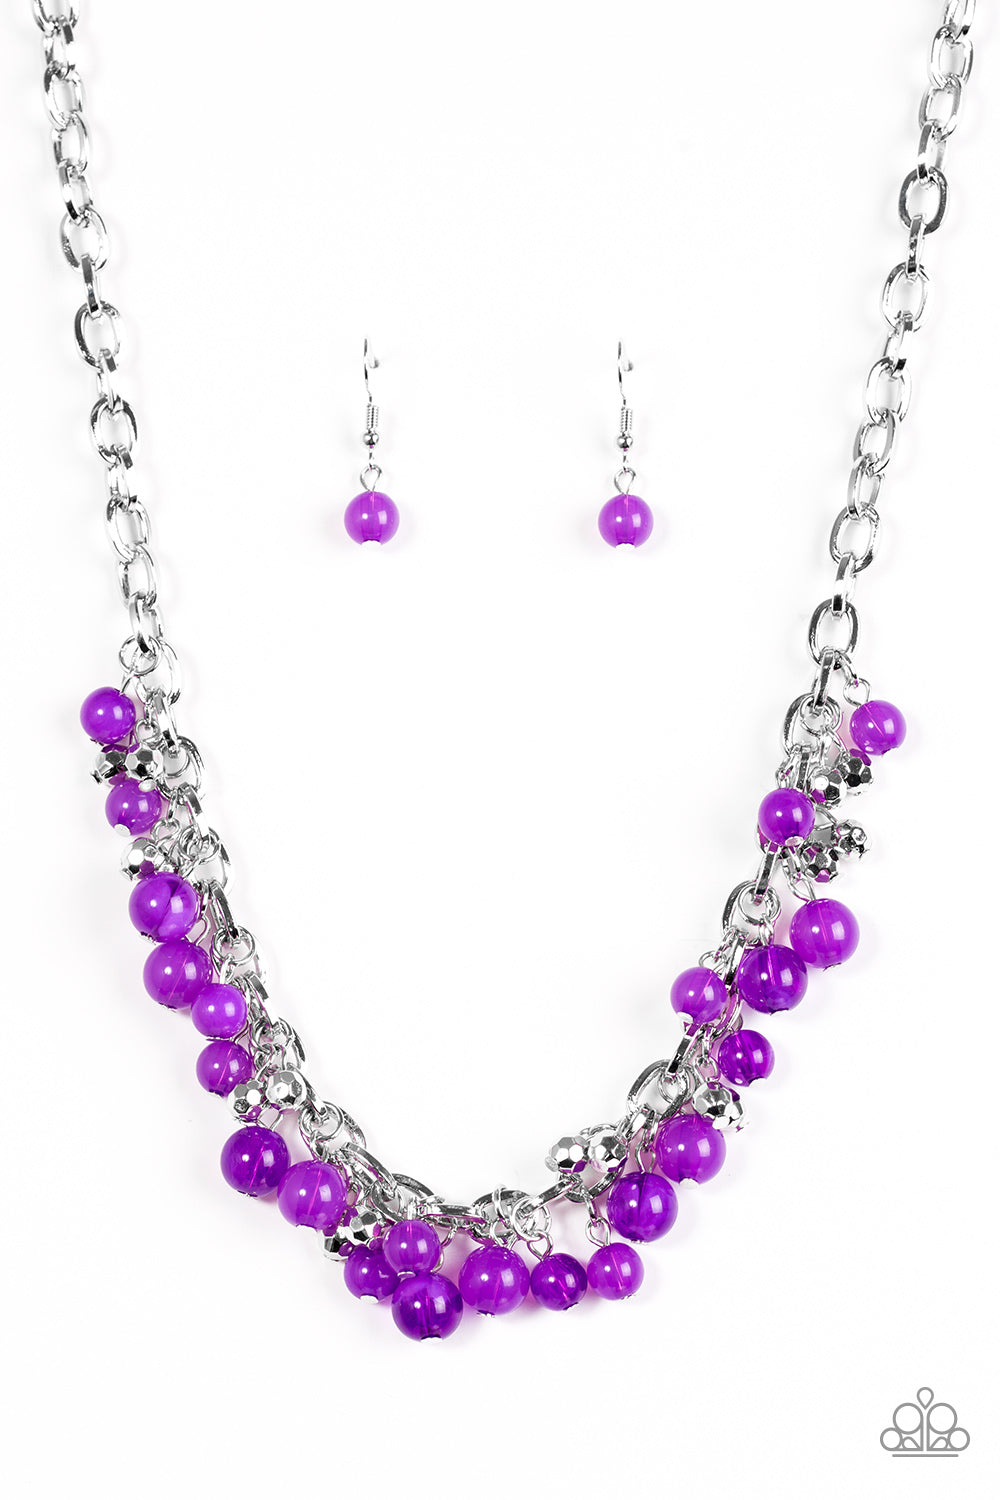 five-dollar-jewelry-palm-beach-boutique-purple-necklace-paparazzi-accessories